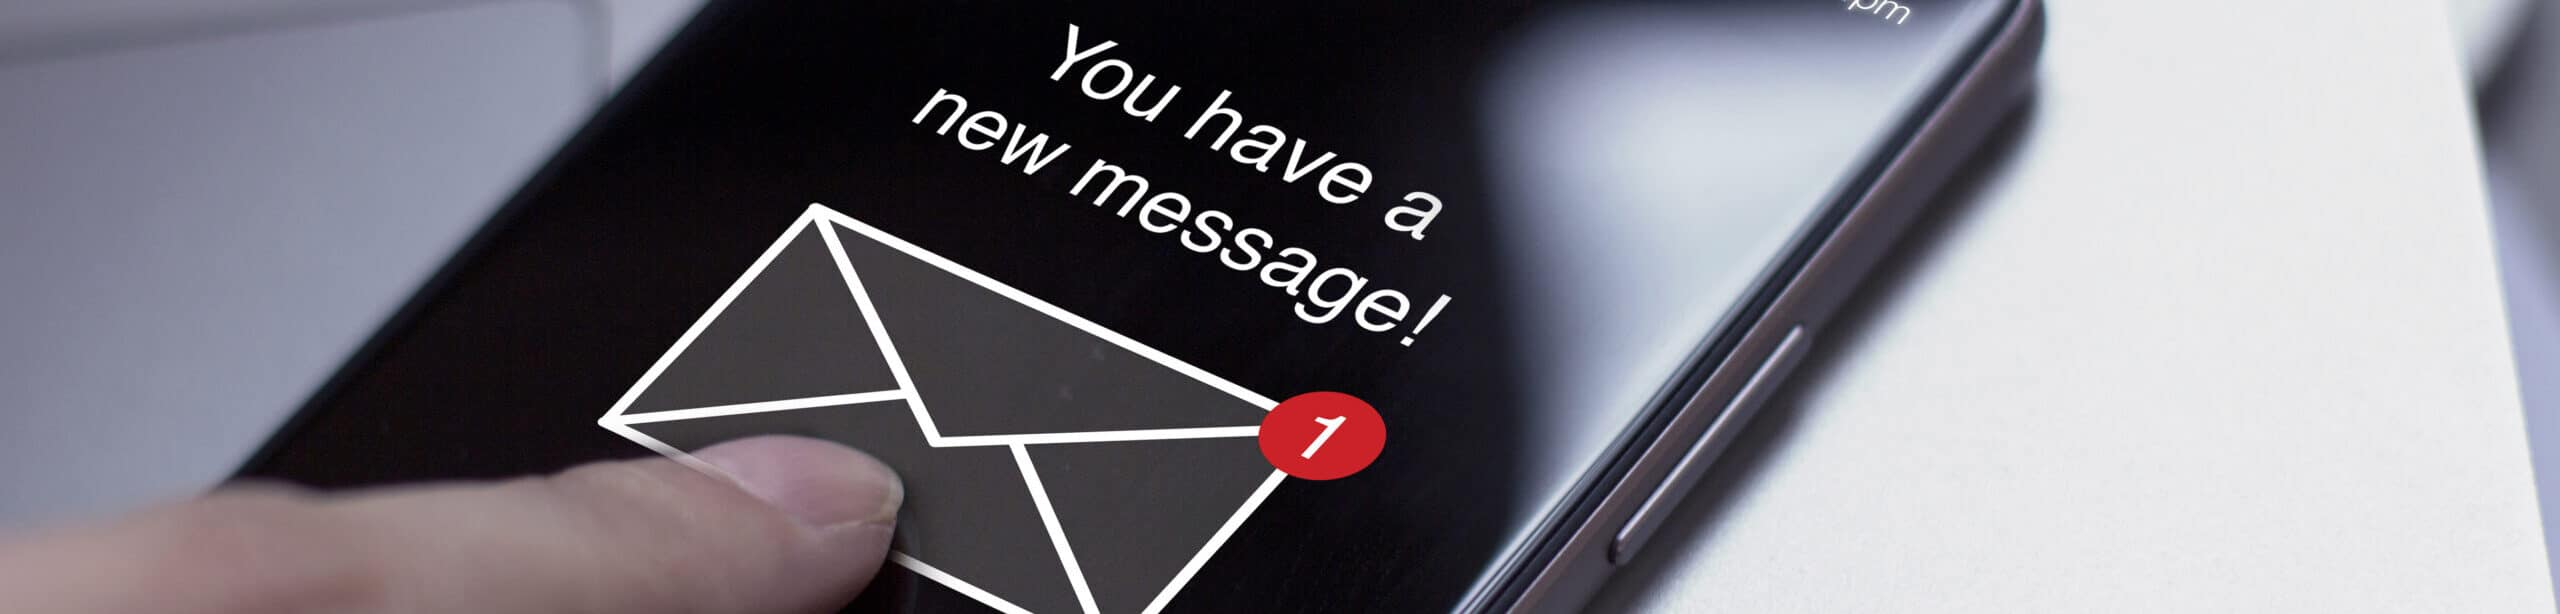 contact us new message icon.